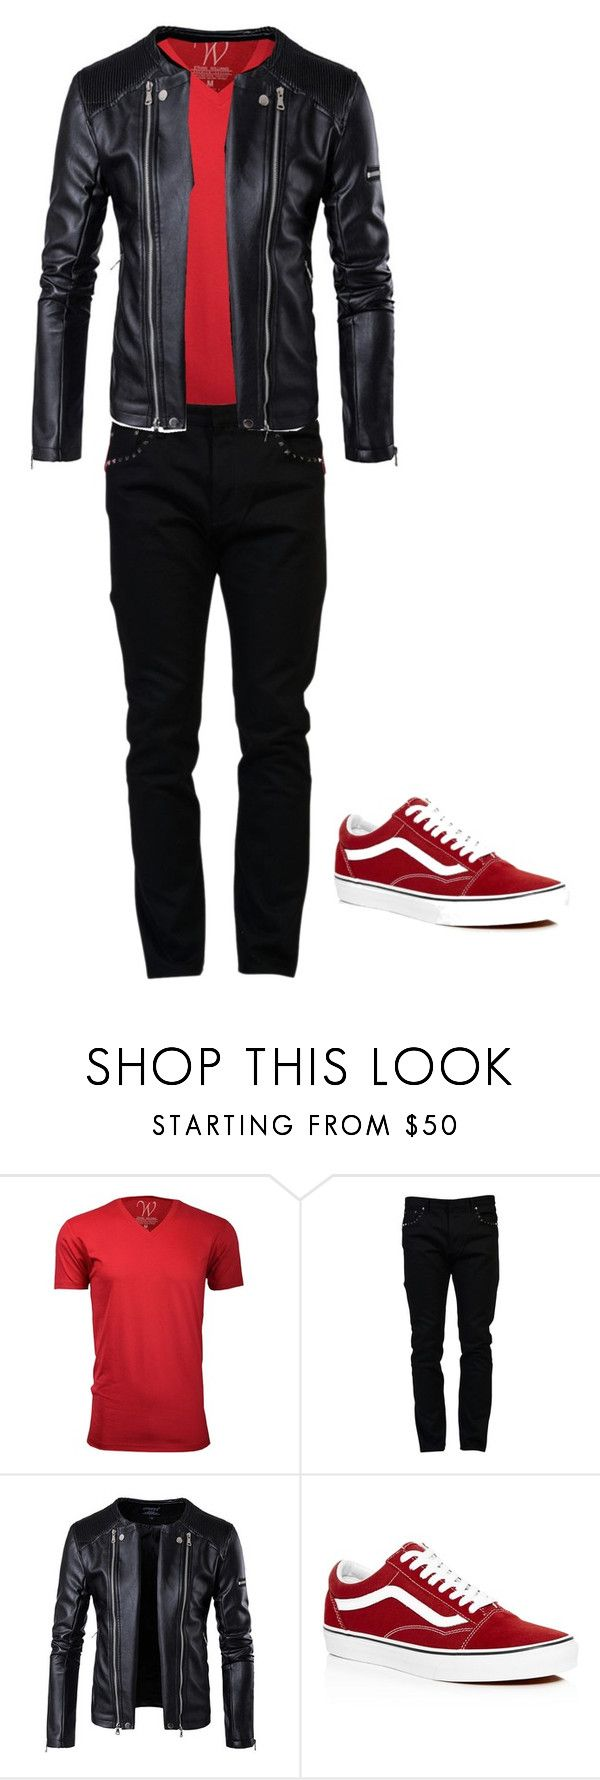 """Finn Lunch Outfit"" by greekofreako ❤ liked on Polyvore featuring Ethan Williams, Valentino, Vans, men's fashion and menswear"